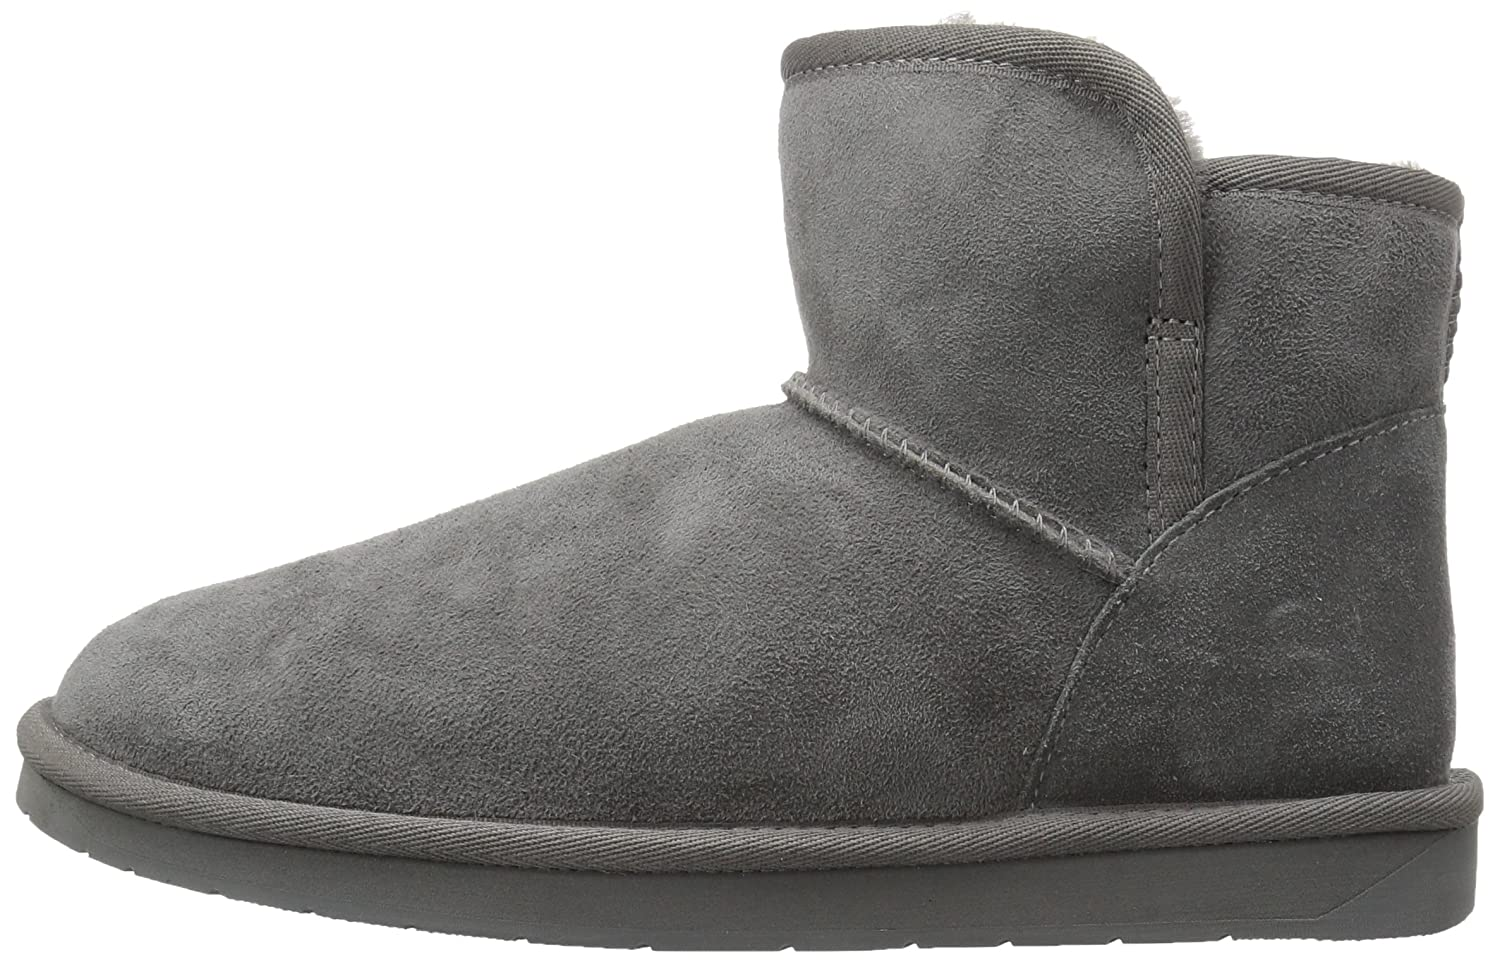 206 Collective Womens Bellevue Shearling Ankle Boot